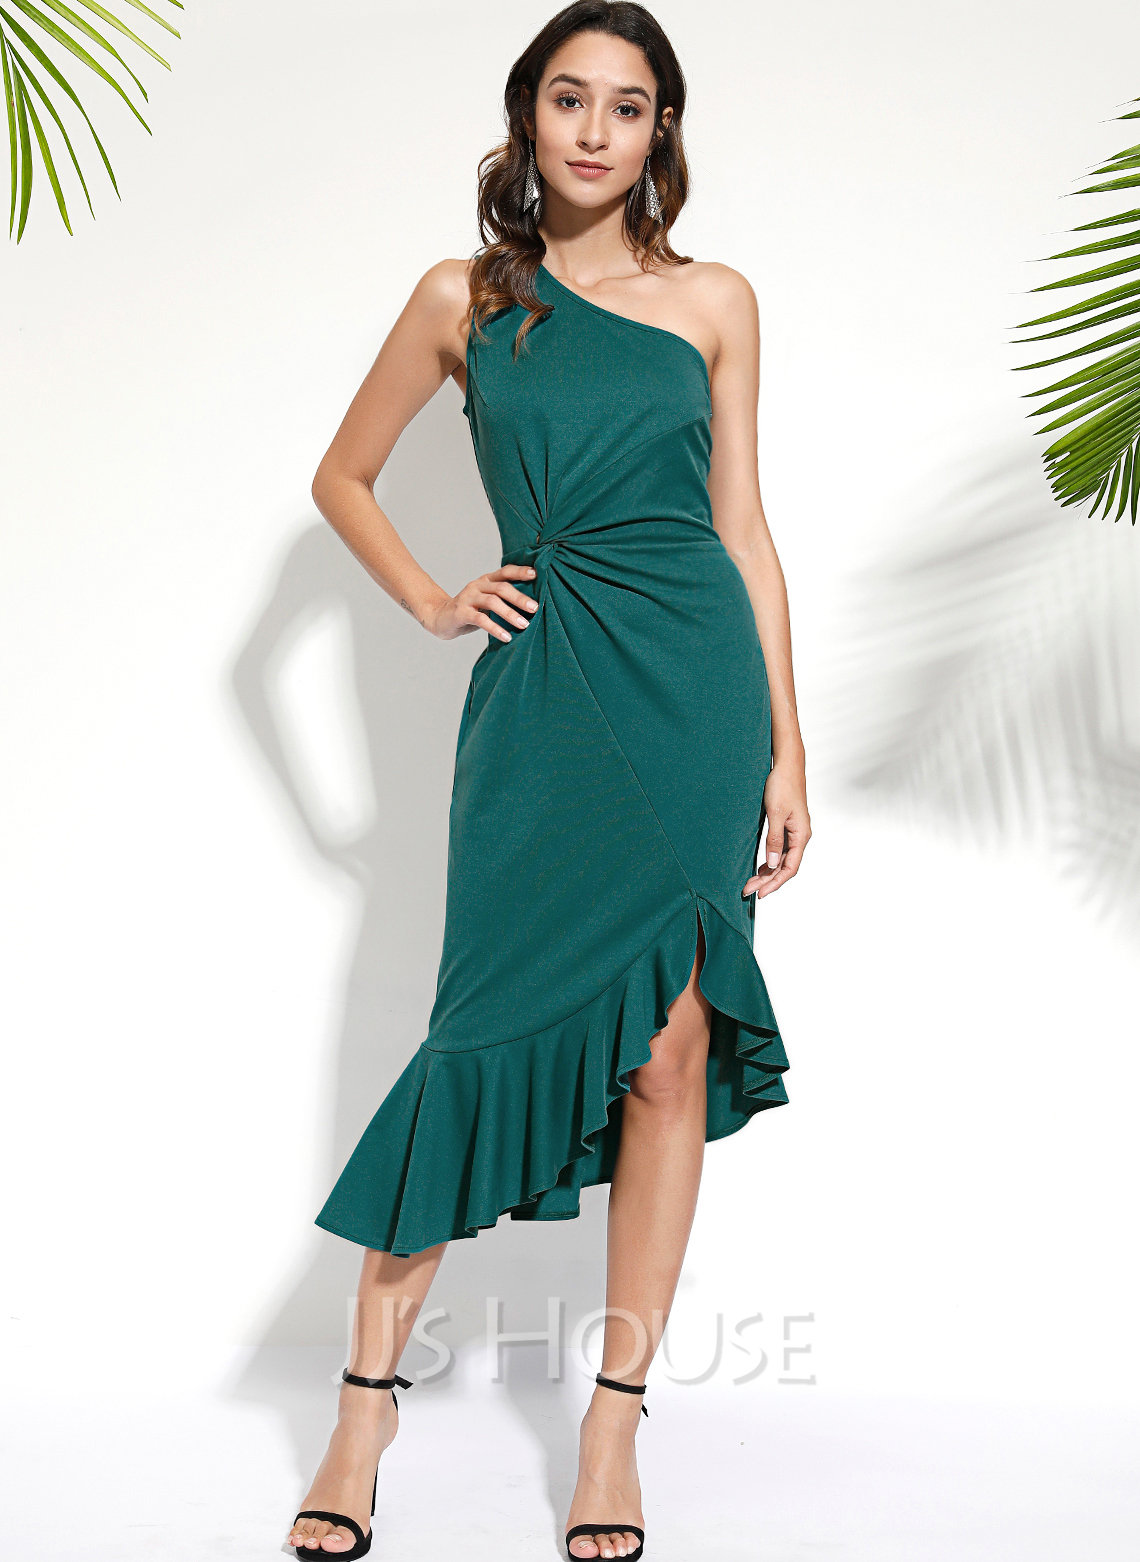 Polyester With Ruffles/Solid/Slit Knee Length Dress